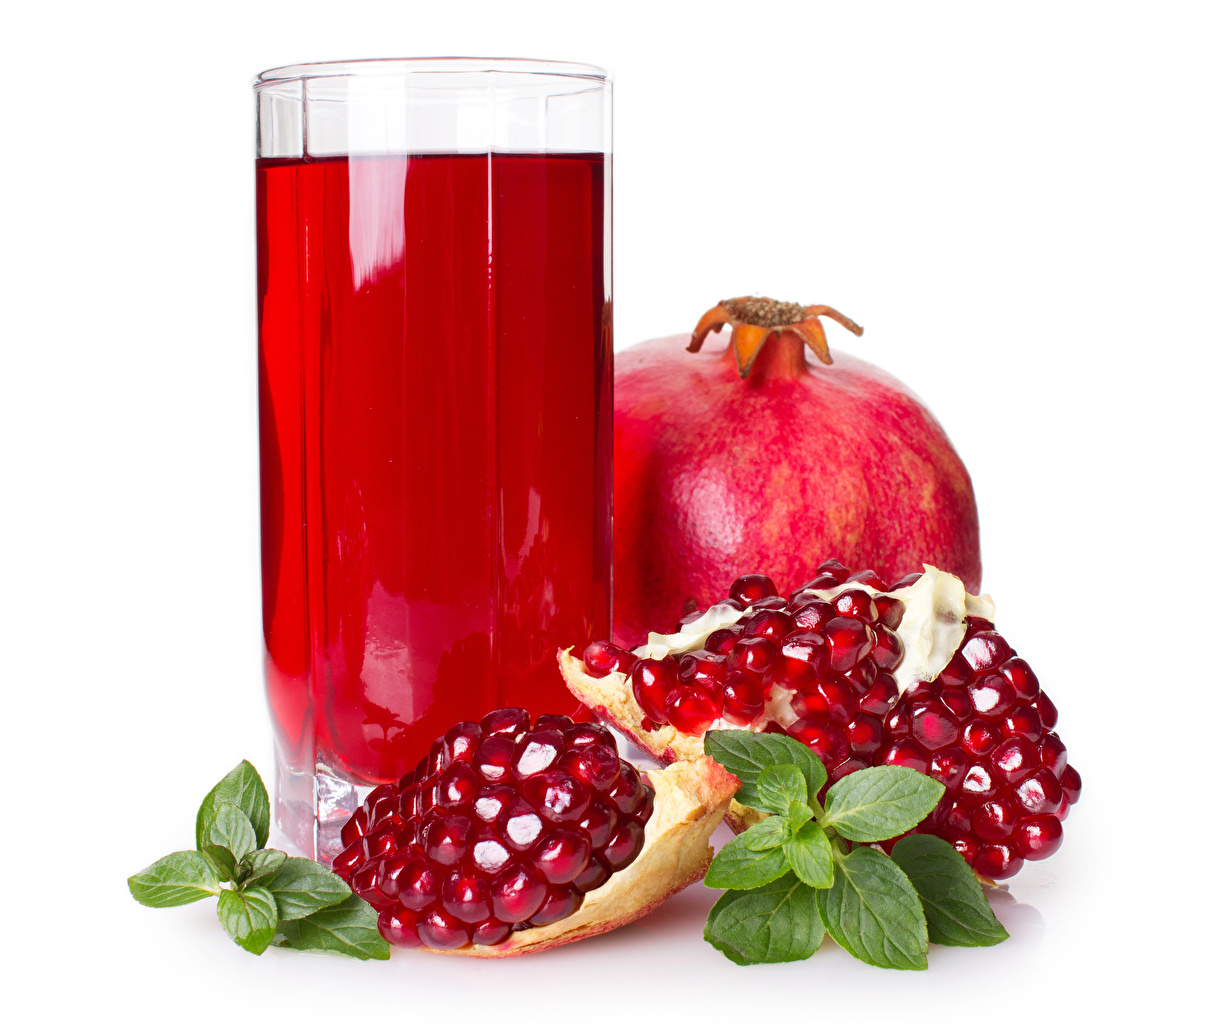 Pictures Juice Grain Pomegranate Highball glass Food White background